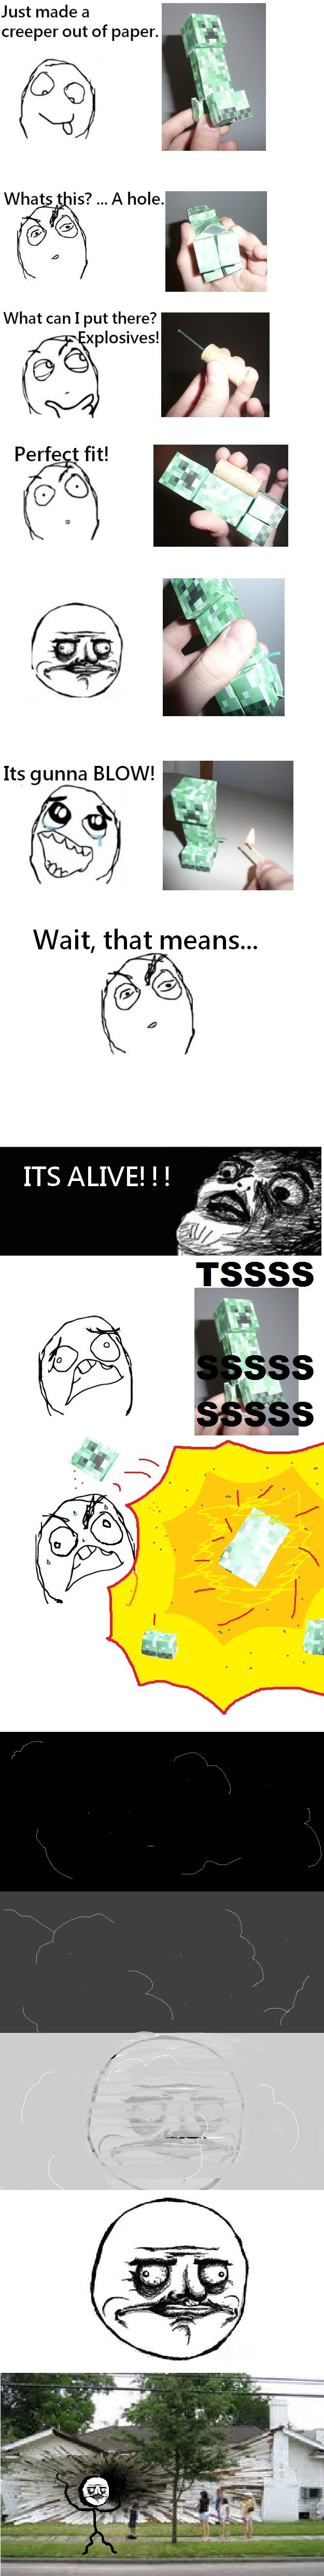 http://img.niceminecraft.net/Funny/Homemade-Creeper.jpg